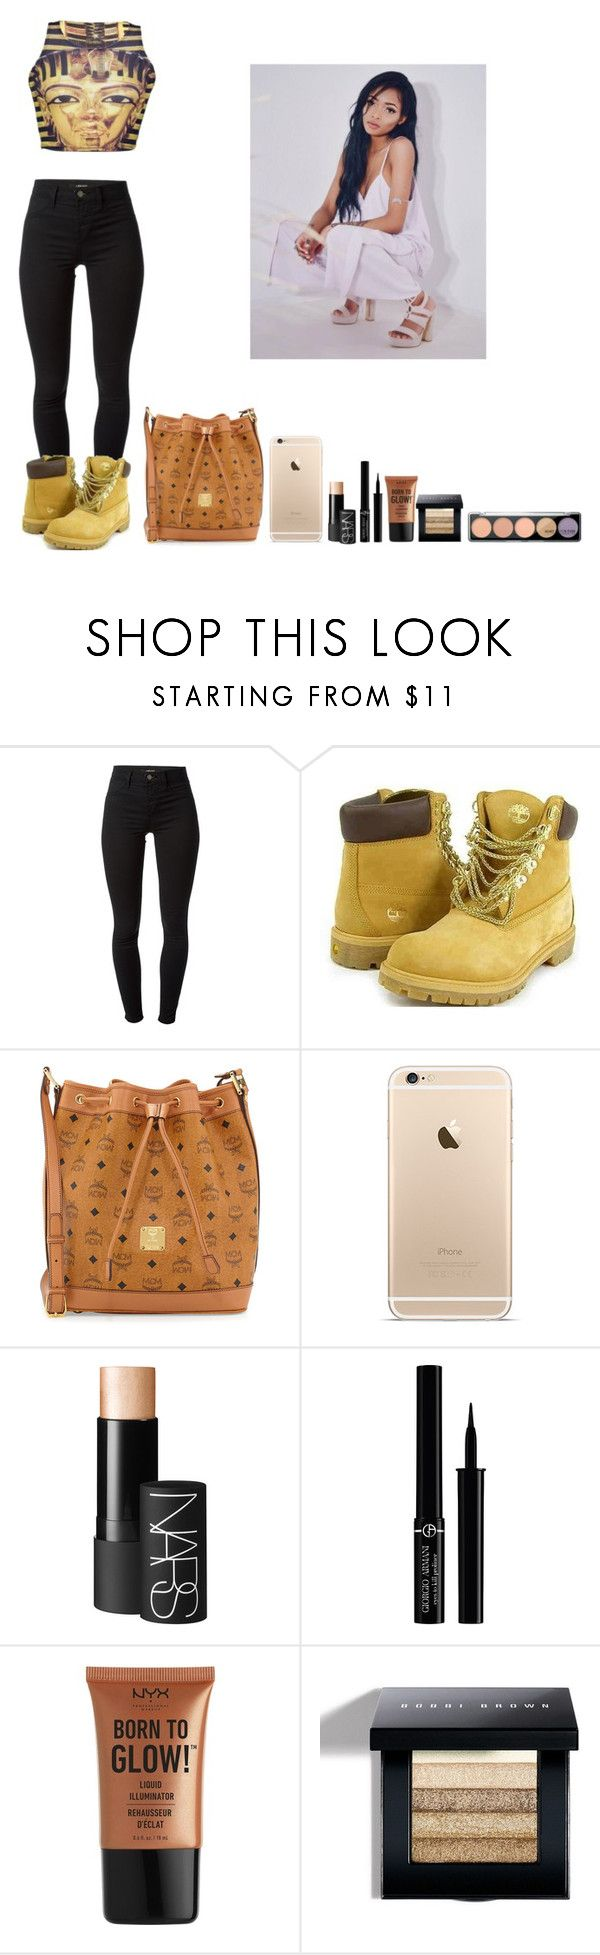 """""""-Dolly"""" by theflawless-doll on Polyvore featuring J Brand, Timberland, MCM, NARS Cosmetics, Giorgio Armani, NYX, Bobbi Brown Cosmetics, MAKE UP FOR EVER and OFFI"""